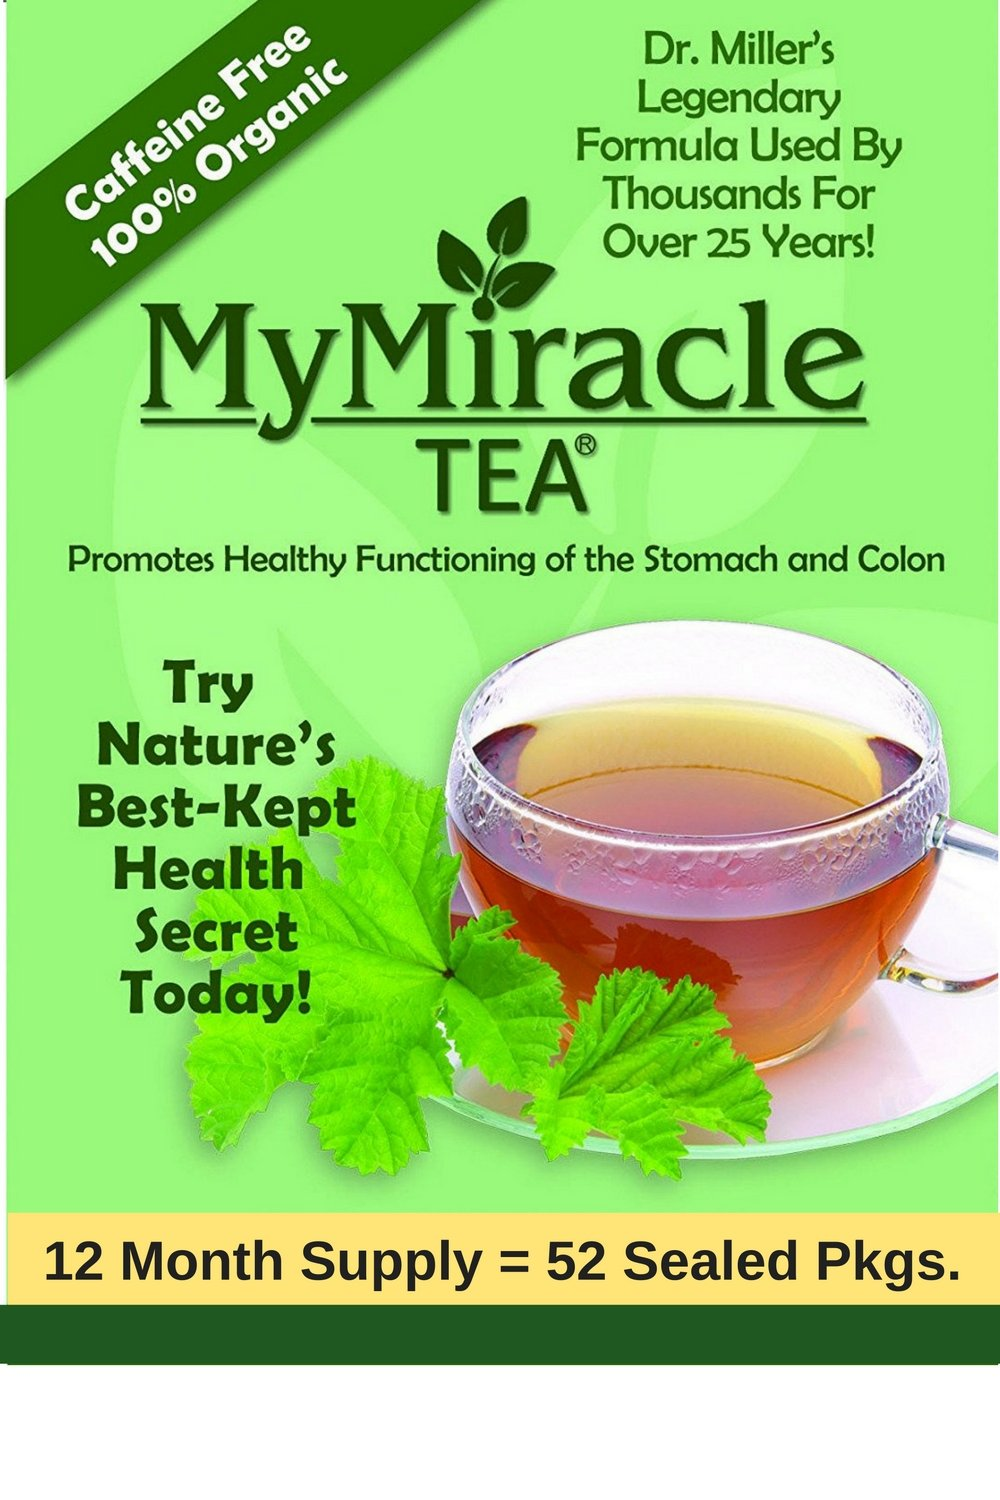 Dr. Miller's Holy Tea   My Miracle Tea Constipation Relief and Detox Tea (12 Month Teabags - Save $110 Discount)